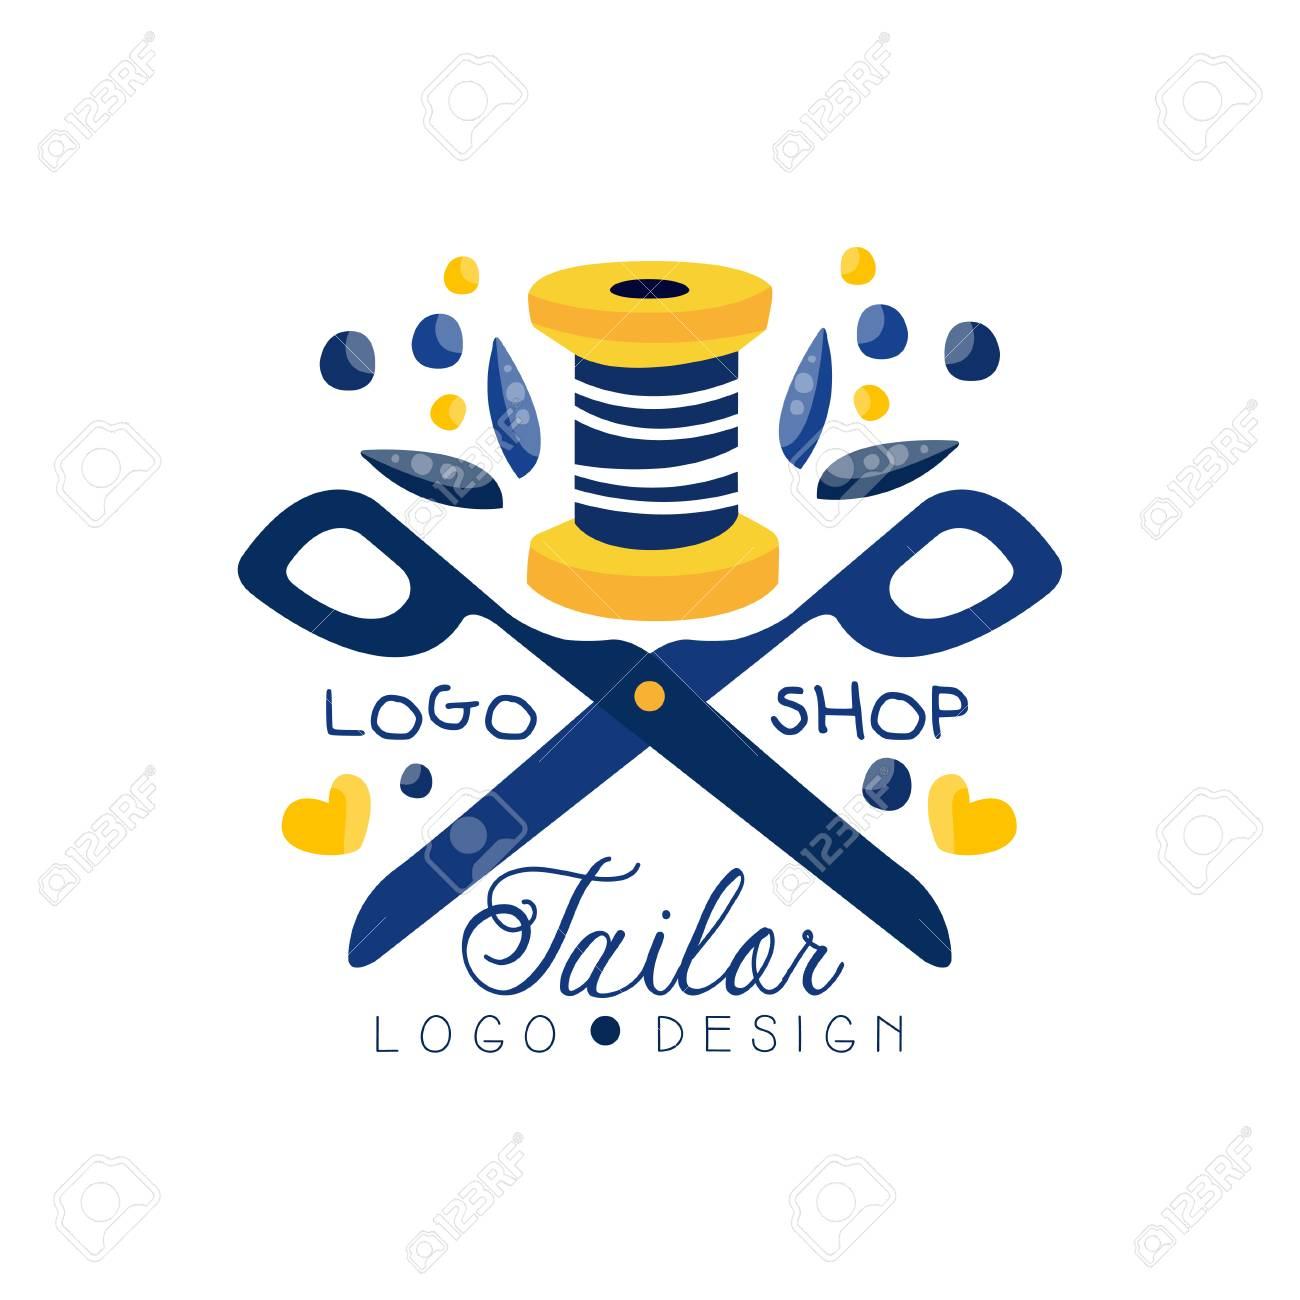 Tailor Shop Logo Design Sewing Company Fashion Designer Emblem Royalty Free Cliparts Vectors And Stock Illustration Image 115657807